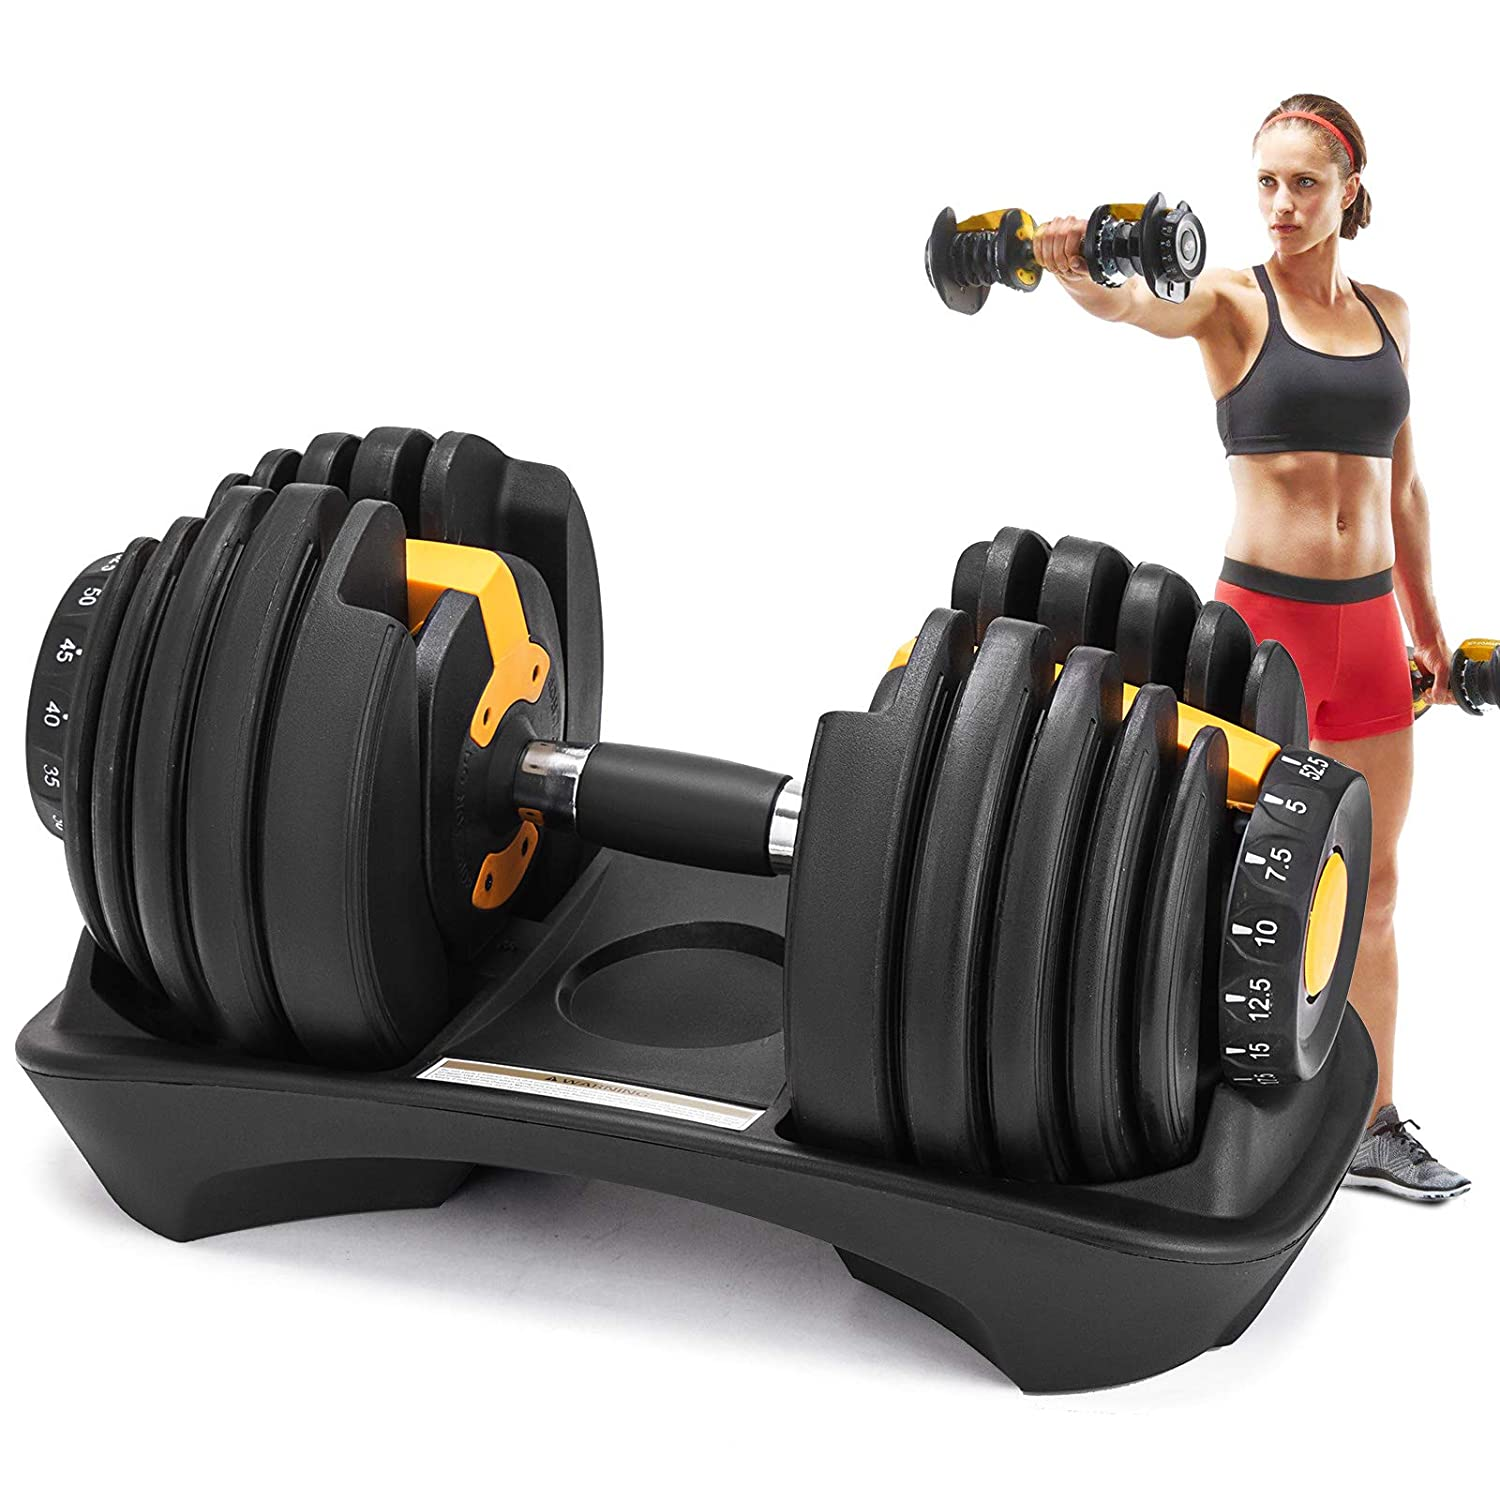 Popsport 52.5LBS Adjustable Dumbbell 1 PCS Fitness Dumbbell Standard Adjustable Dumbbell Handle Weight Plate Home Gym System- Building Muscle